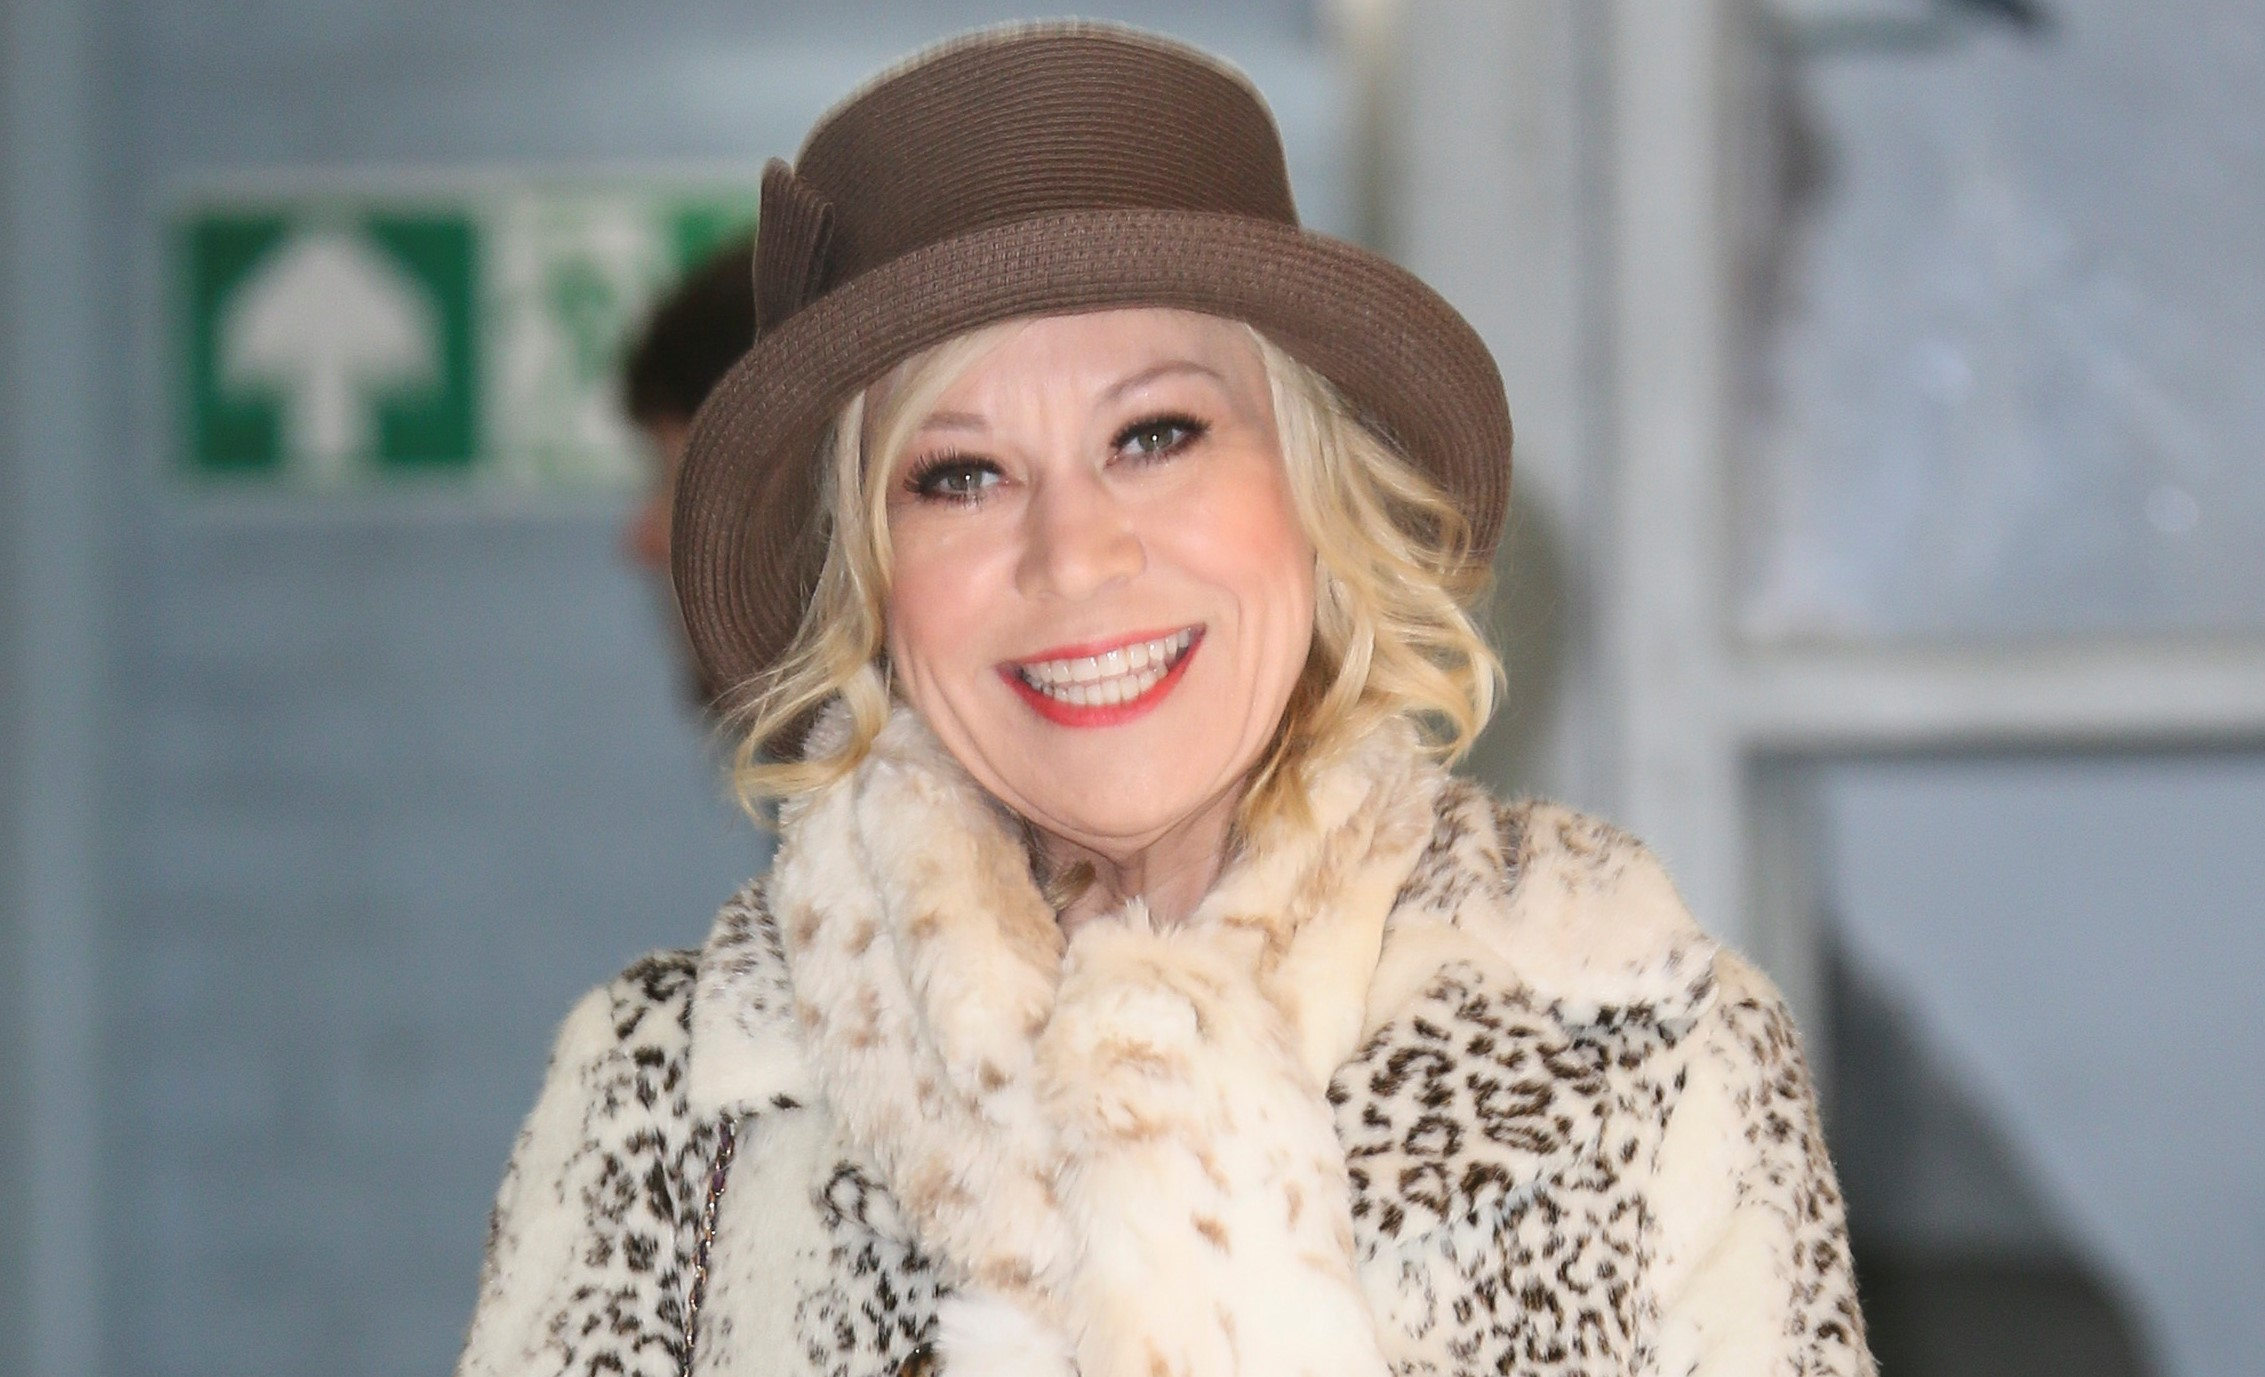 Tina Malone admits breach of James Bulger killer injunction